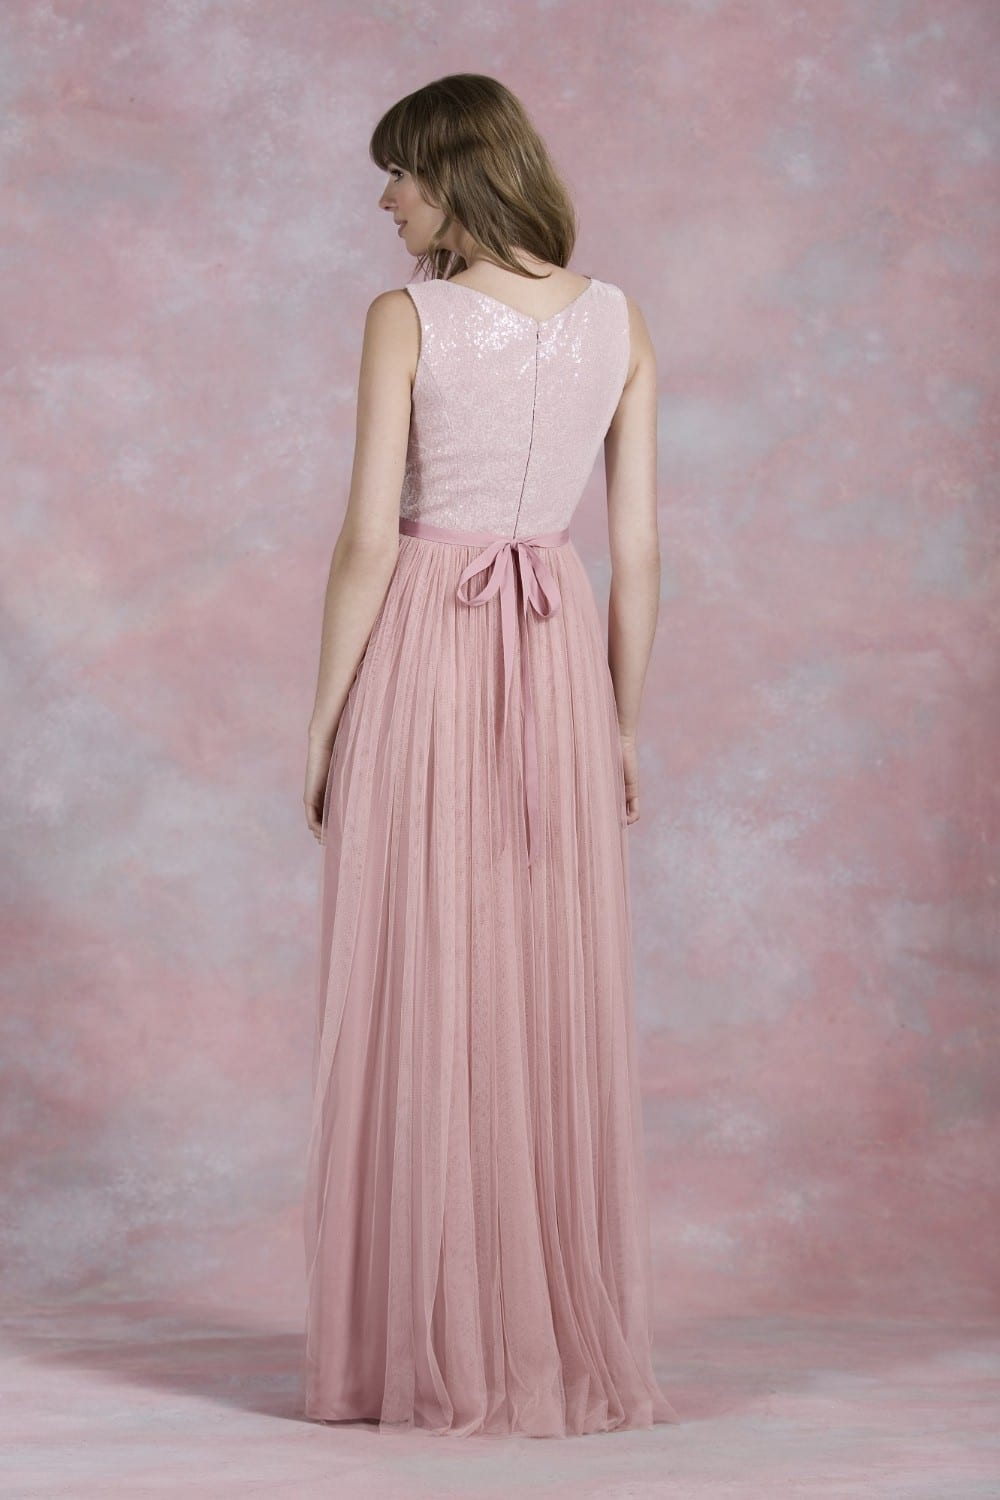 Nude Pink Sequined A Line Zipper Back Long Tulle Bridesmaid Dress